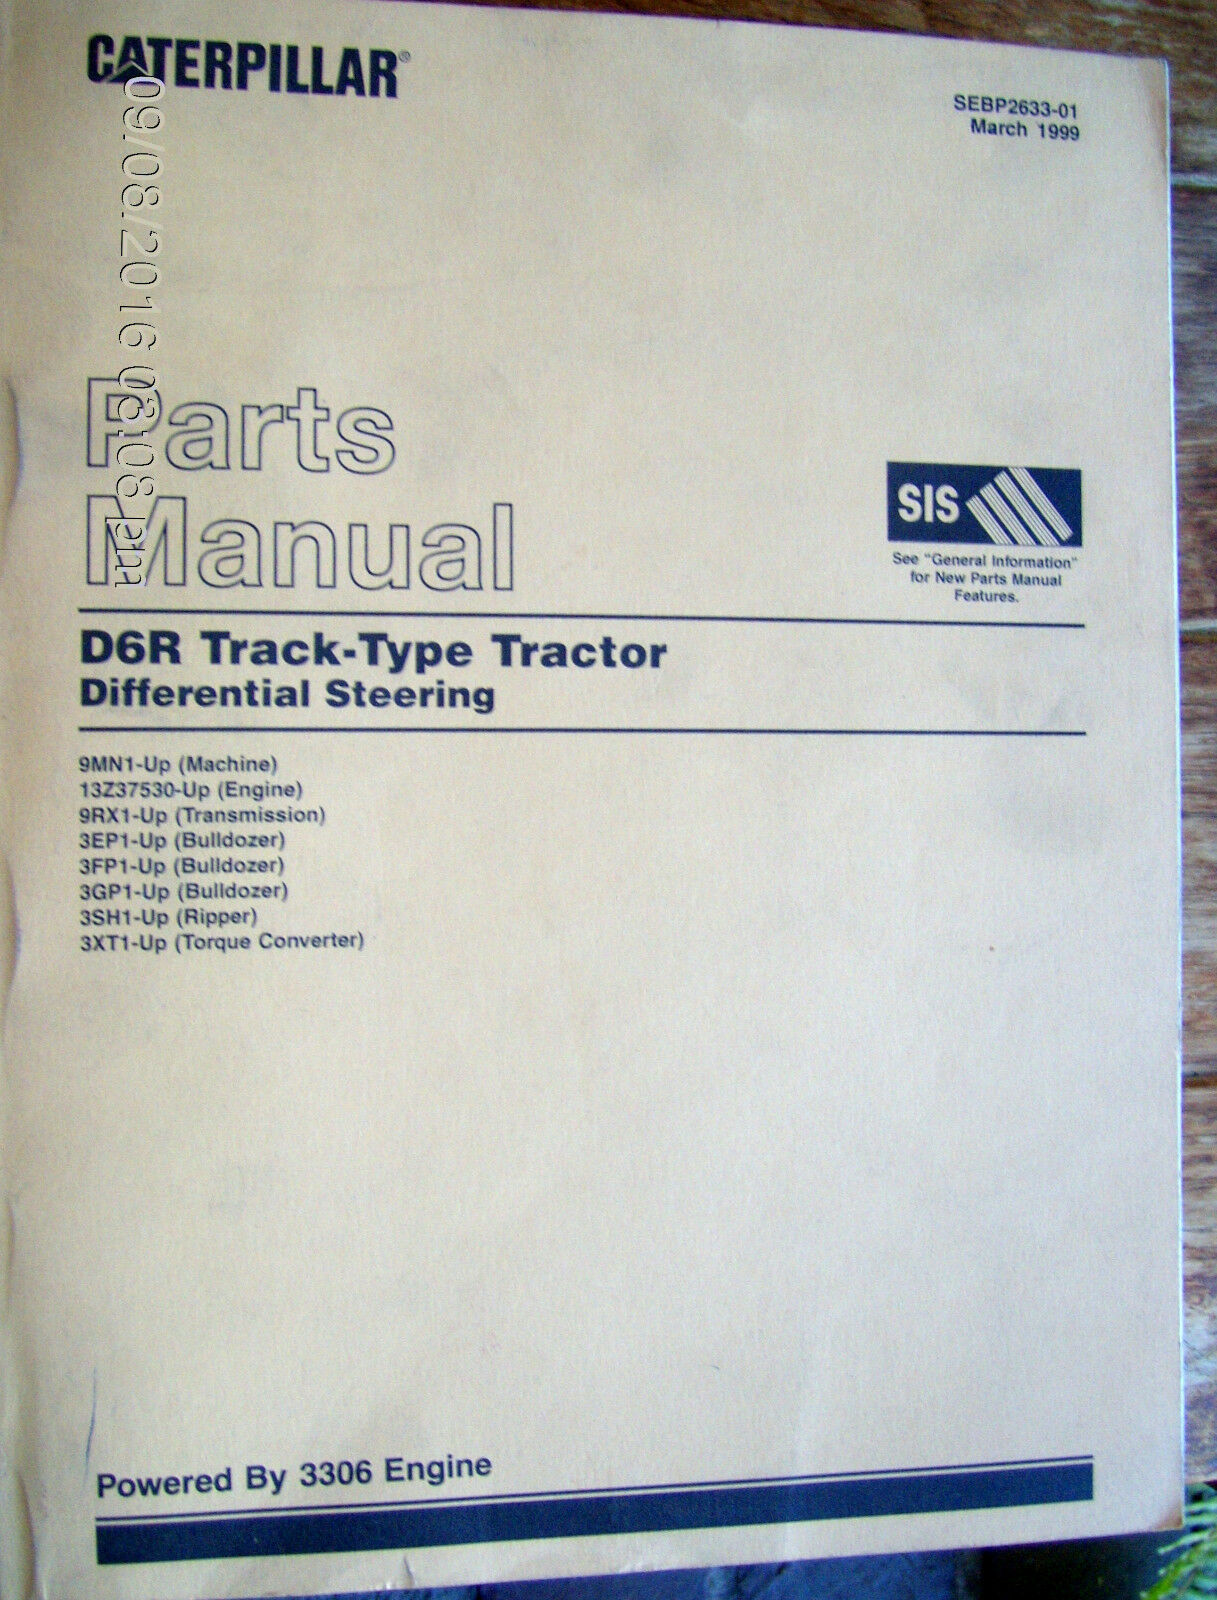 Caterpillar Cat D6r Lgp Track Type Tractor Parts Manual 8tm Sebp2634 3306 Engine Diagram 02 691 1 Of 10only Available